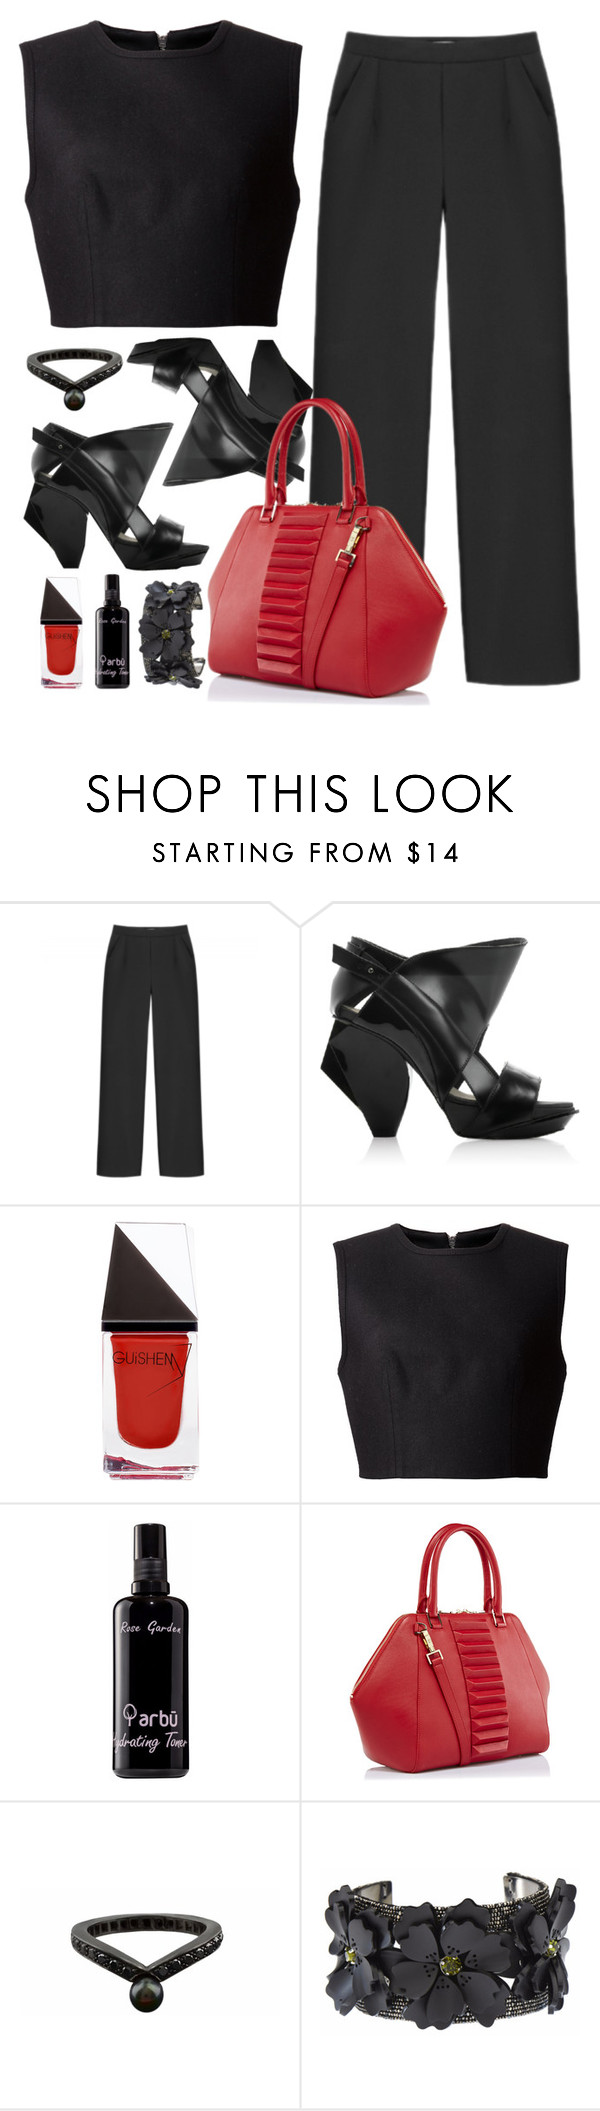 """Edgy outfit inspiration"" by runway2street ❤ liked on Polyvore featuring Non, Abcense, GUiSHEM, Alexander Wang, arbÅ«, Kristina George, Karapetyan and Forest of Chintz"